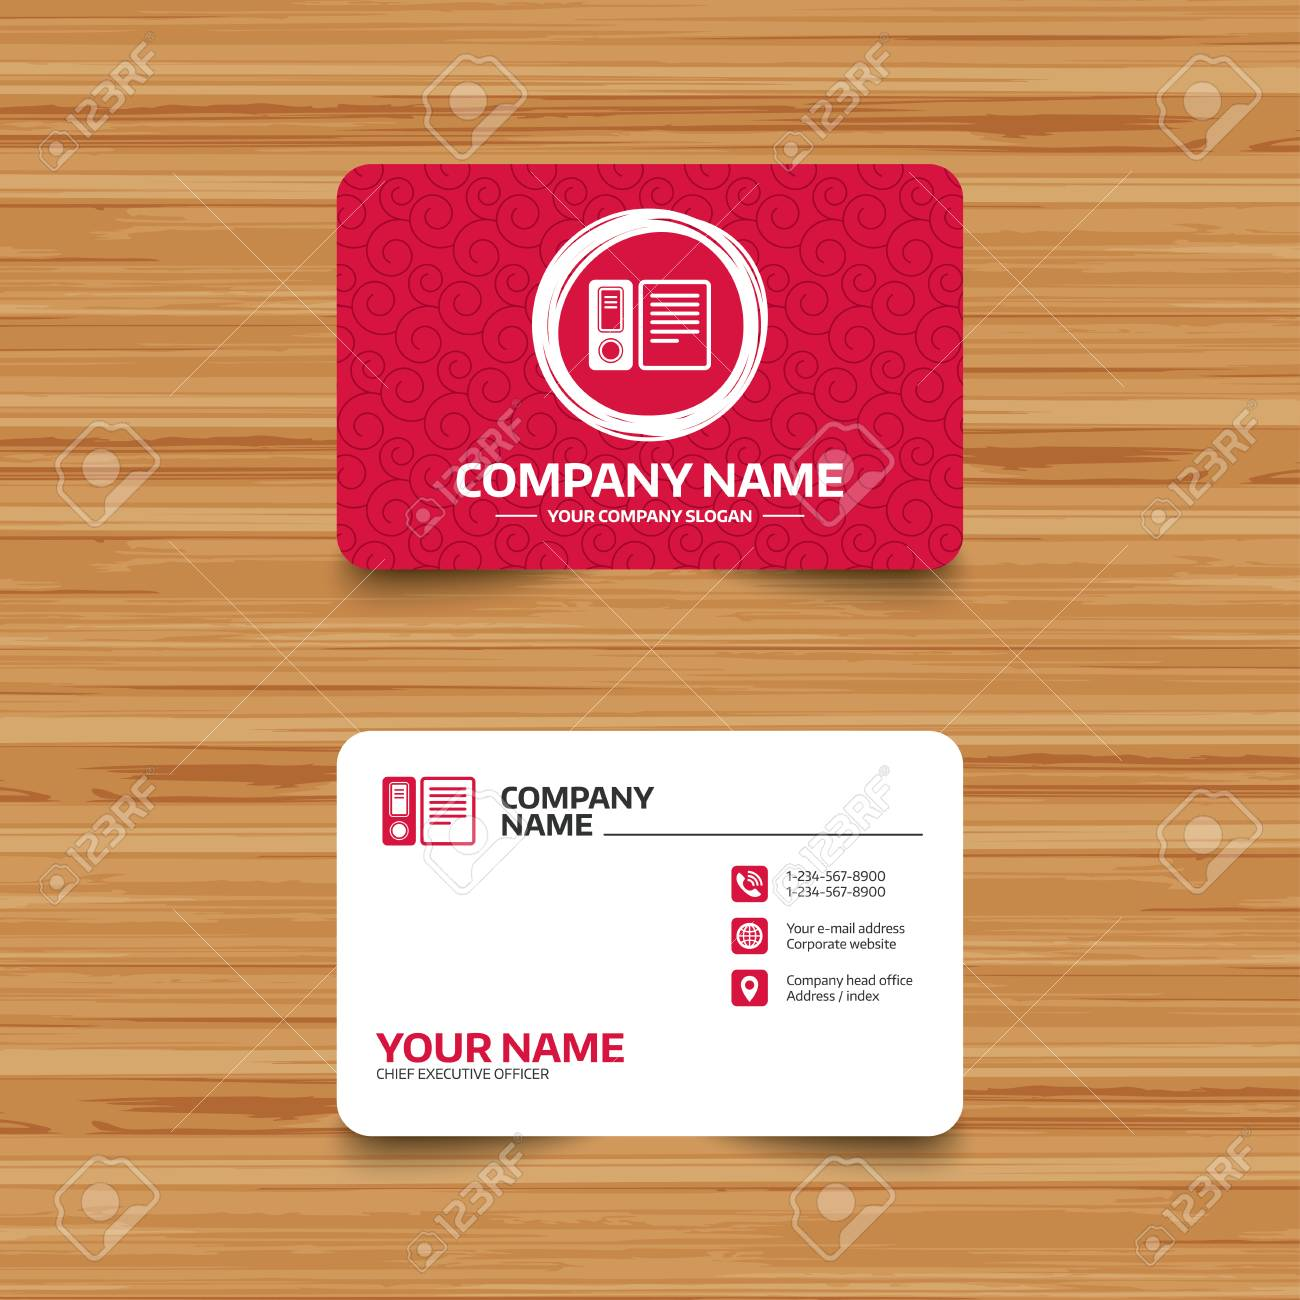 Business card template with texture document folder sign business card template with texture document folder sign accounting binder symbol bookkeeping management flashek Gallery